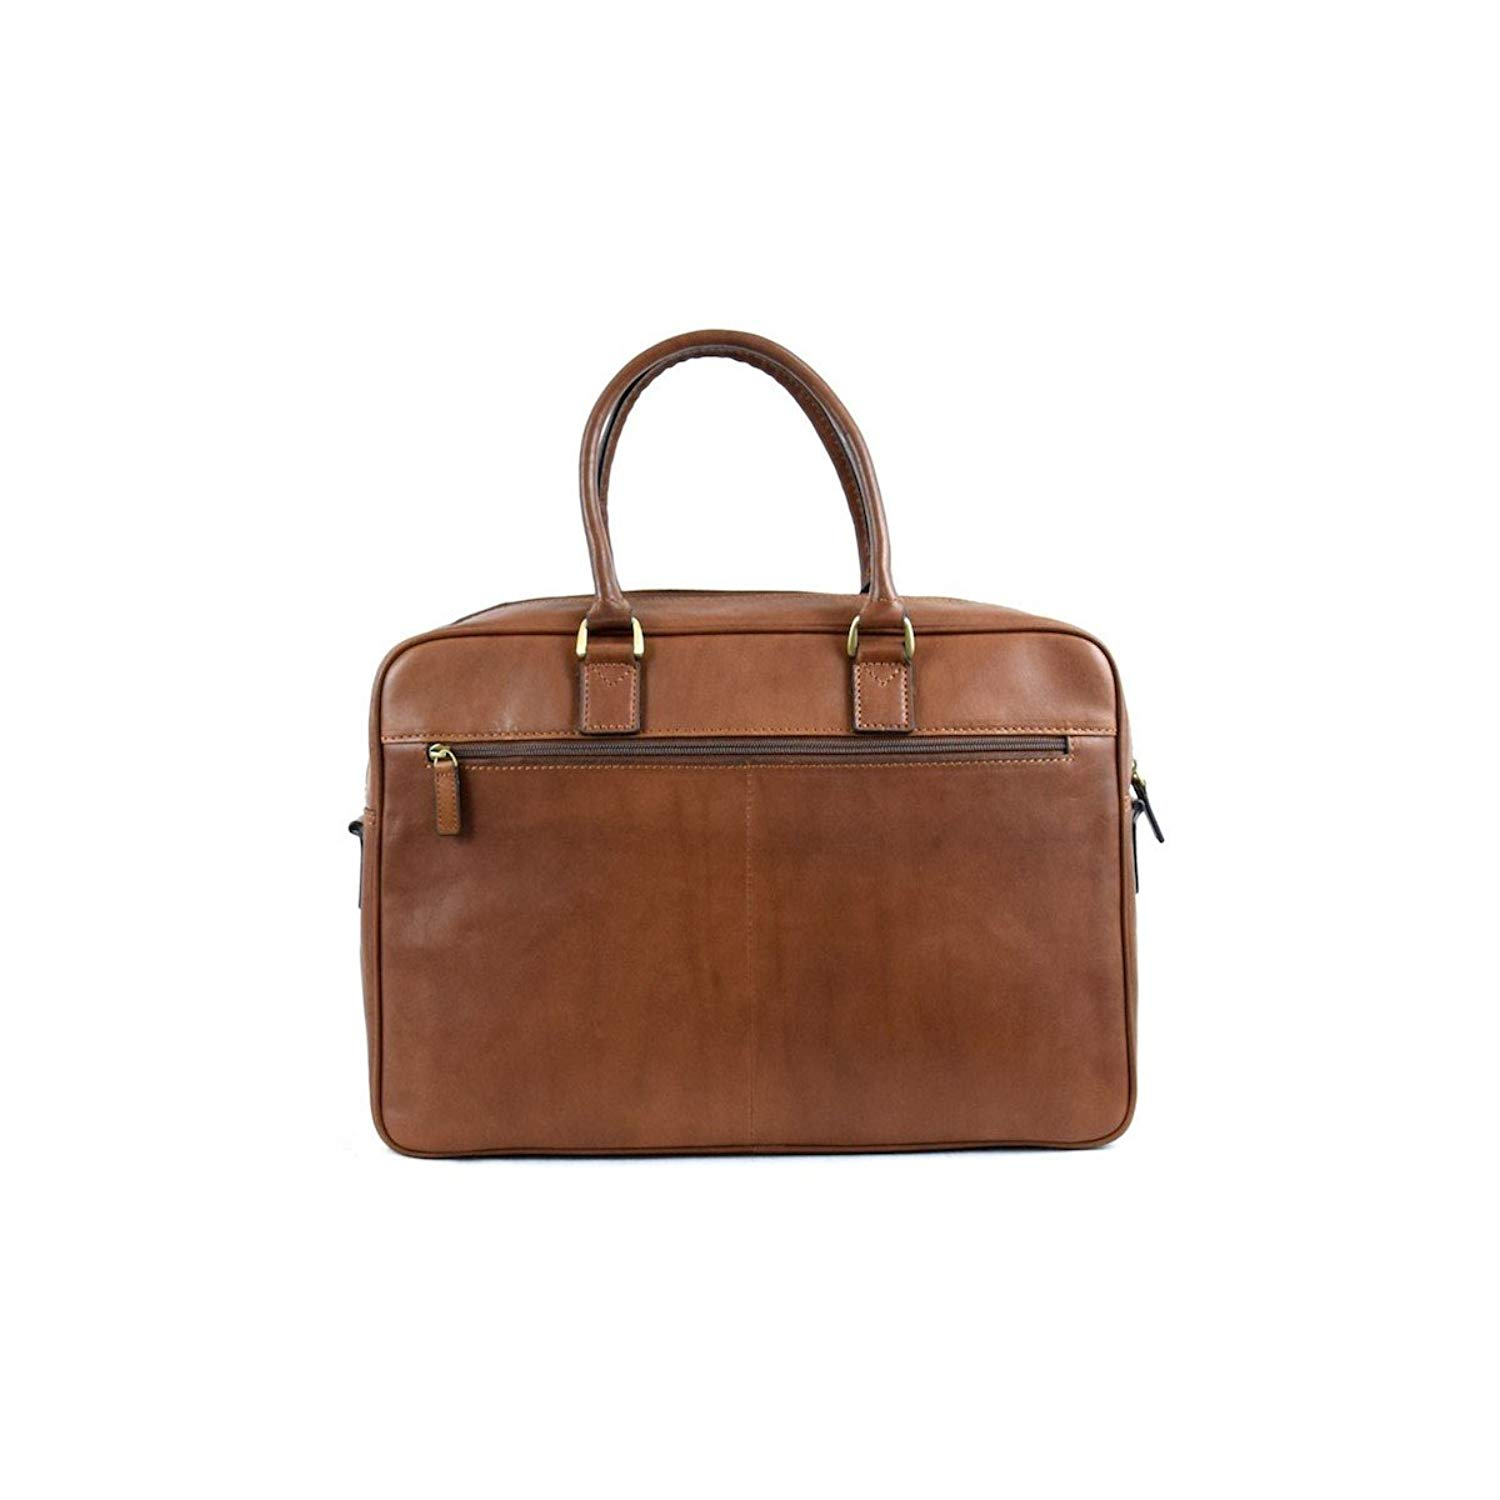 Dream Leather Bags Made in Italy Genuine Leather Vegetable Tanned Leather Business Bag Color Brown